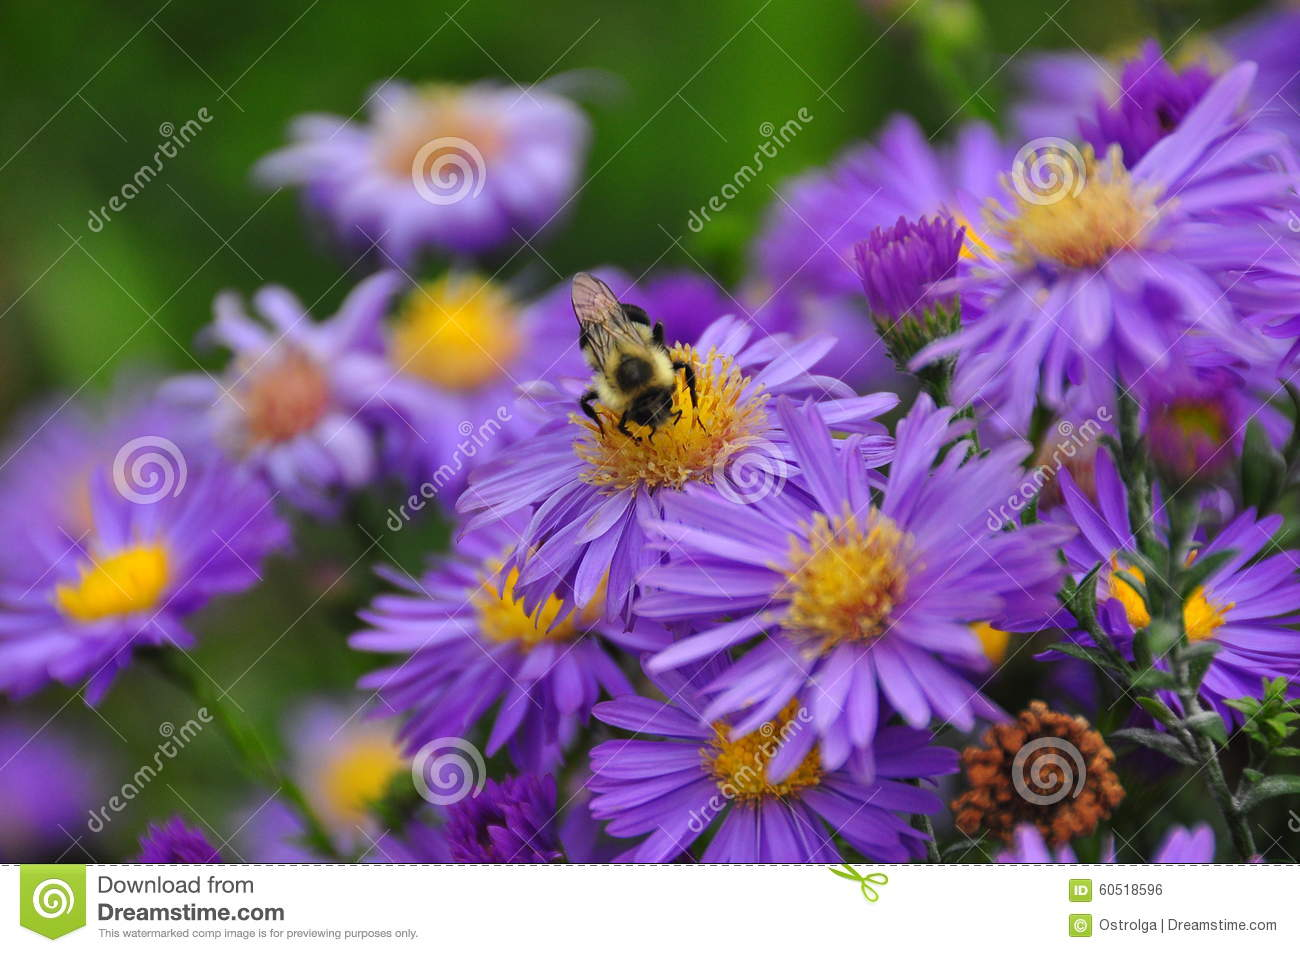 Bee On The Purple And Yellow Flower Collecting A Nectar Stock Photo